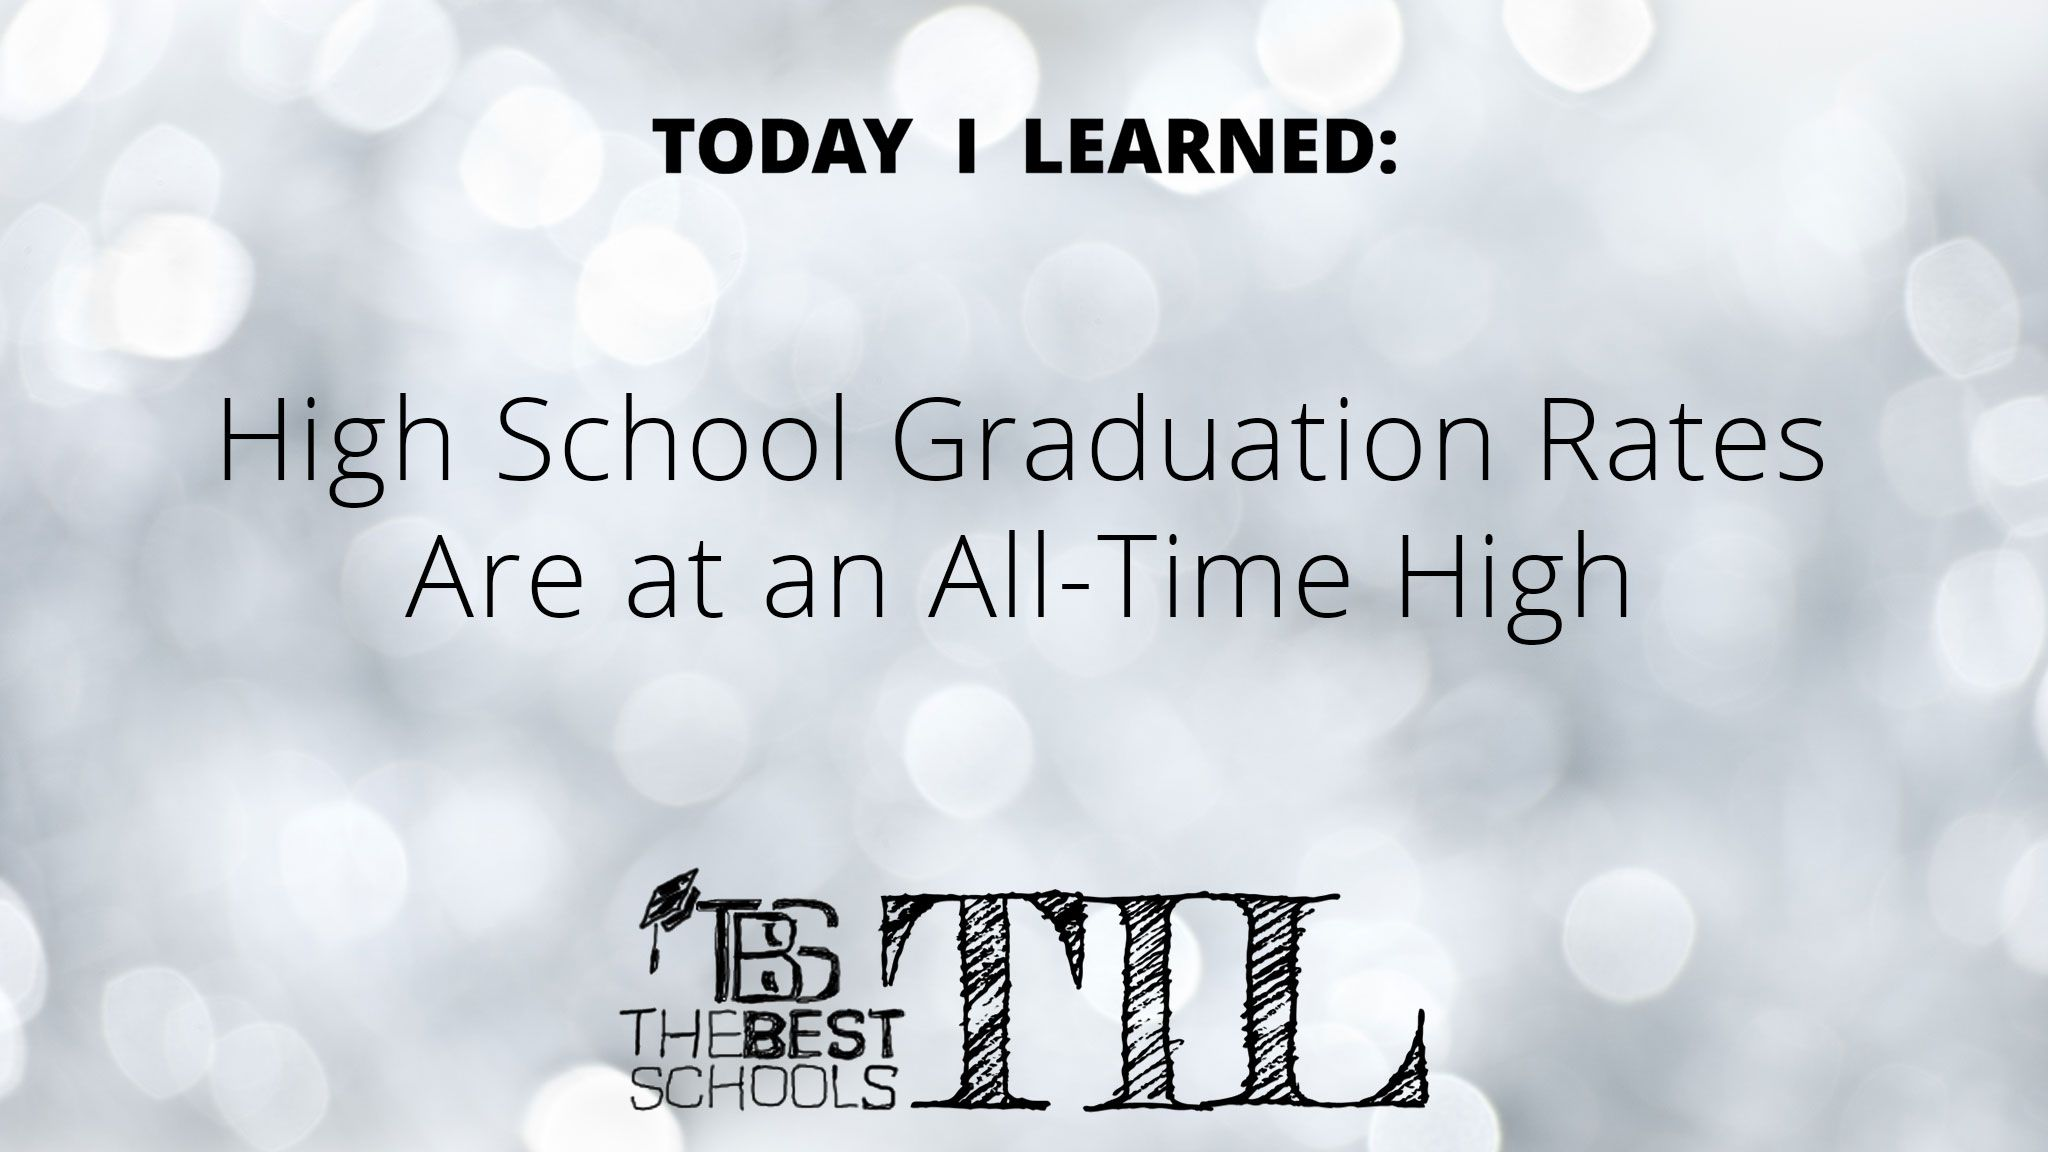 Today I Learned…That High School Graduation Rates Are at an All-Time High